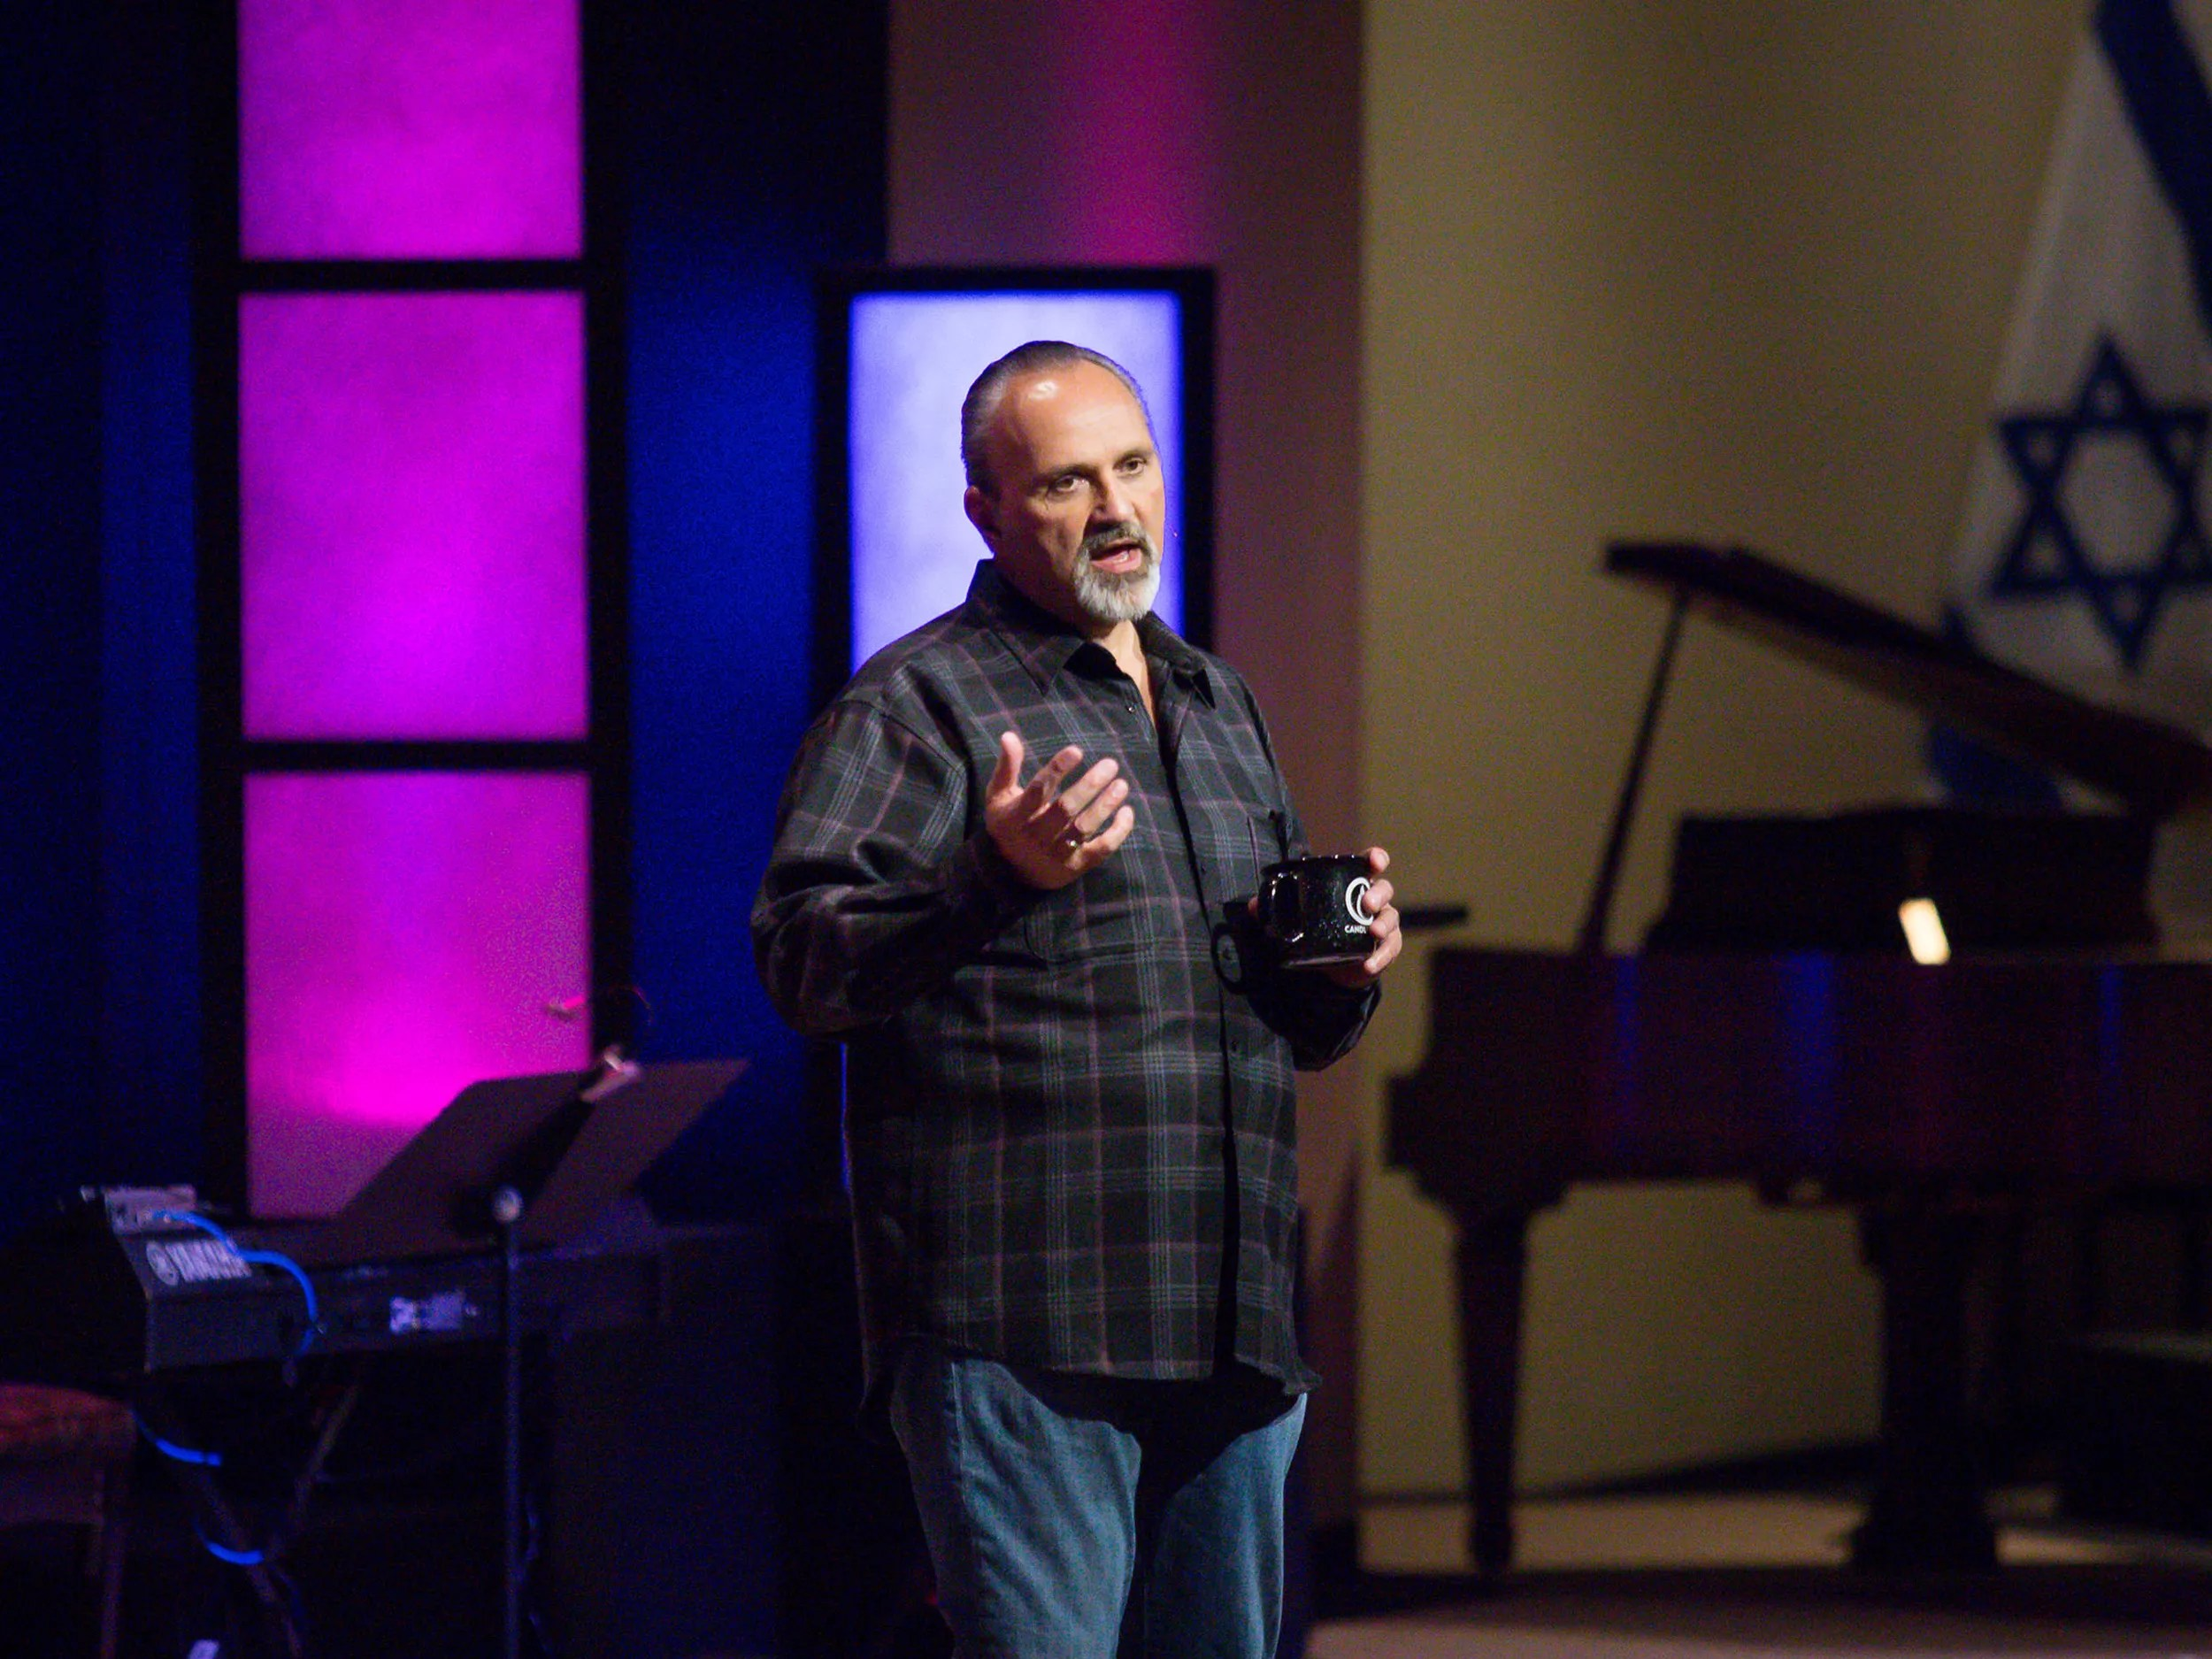 Idaho Pastor who disproved of mask mandate is in intensive care with Covid19